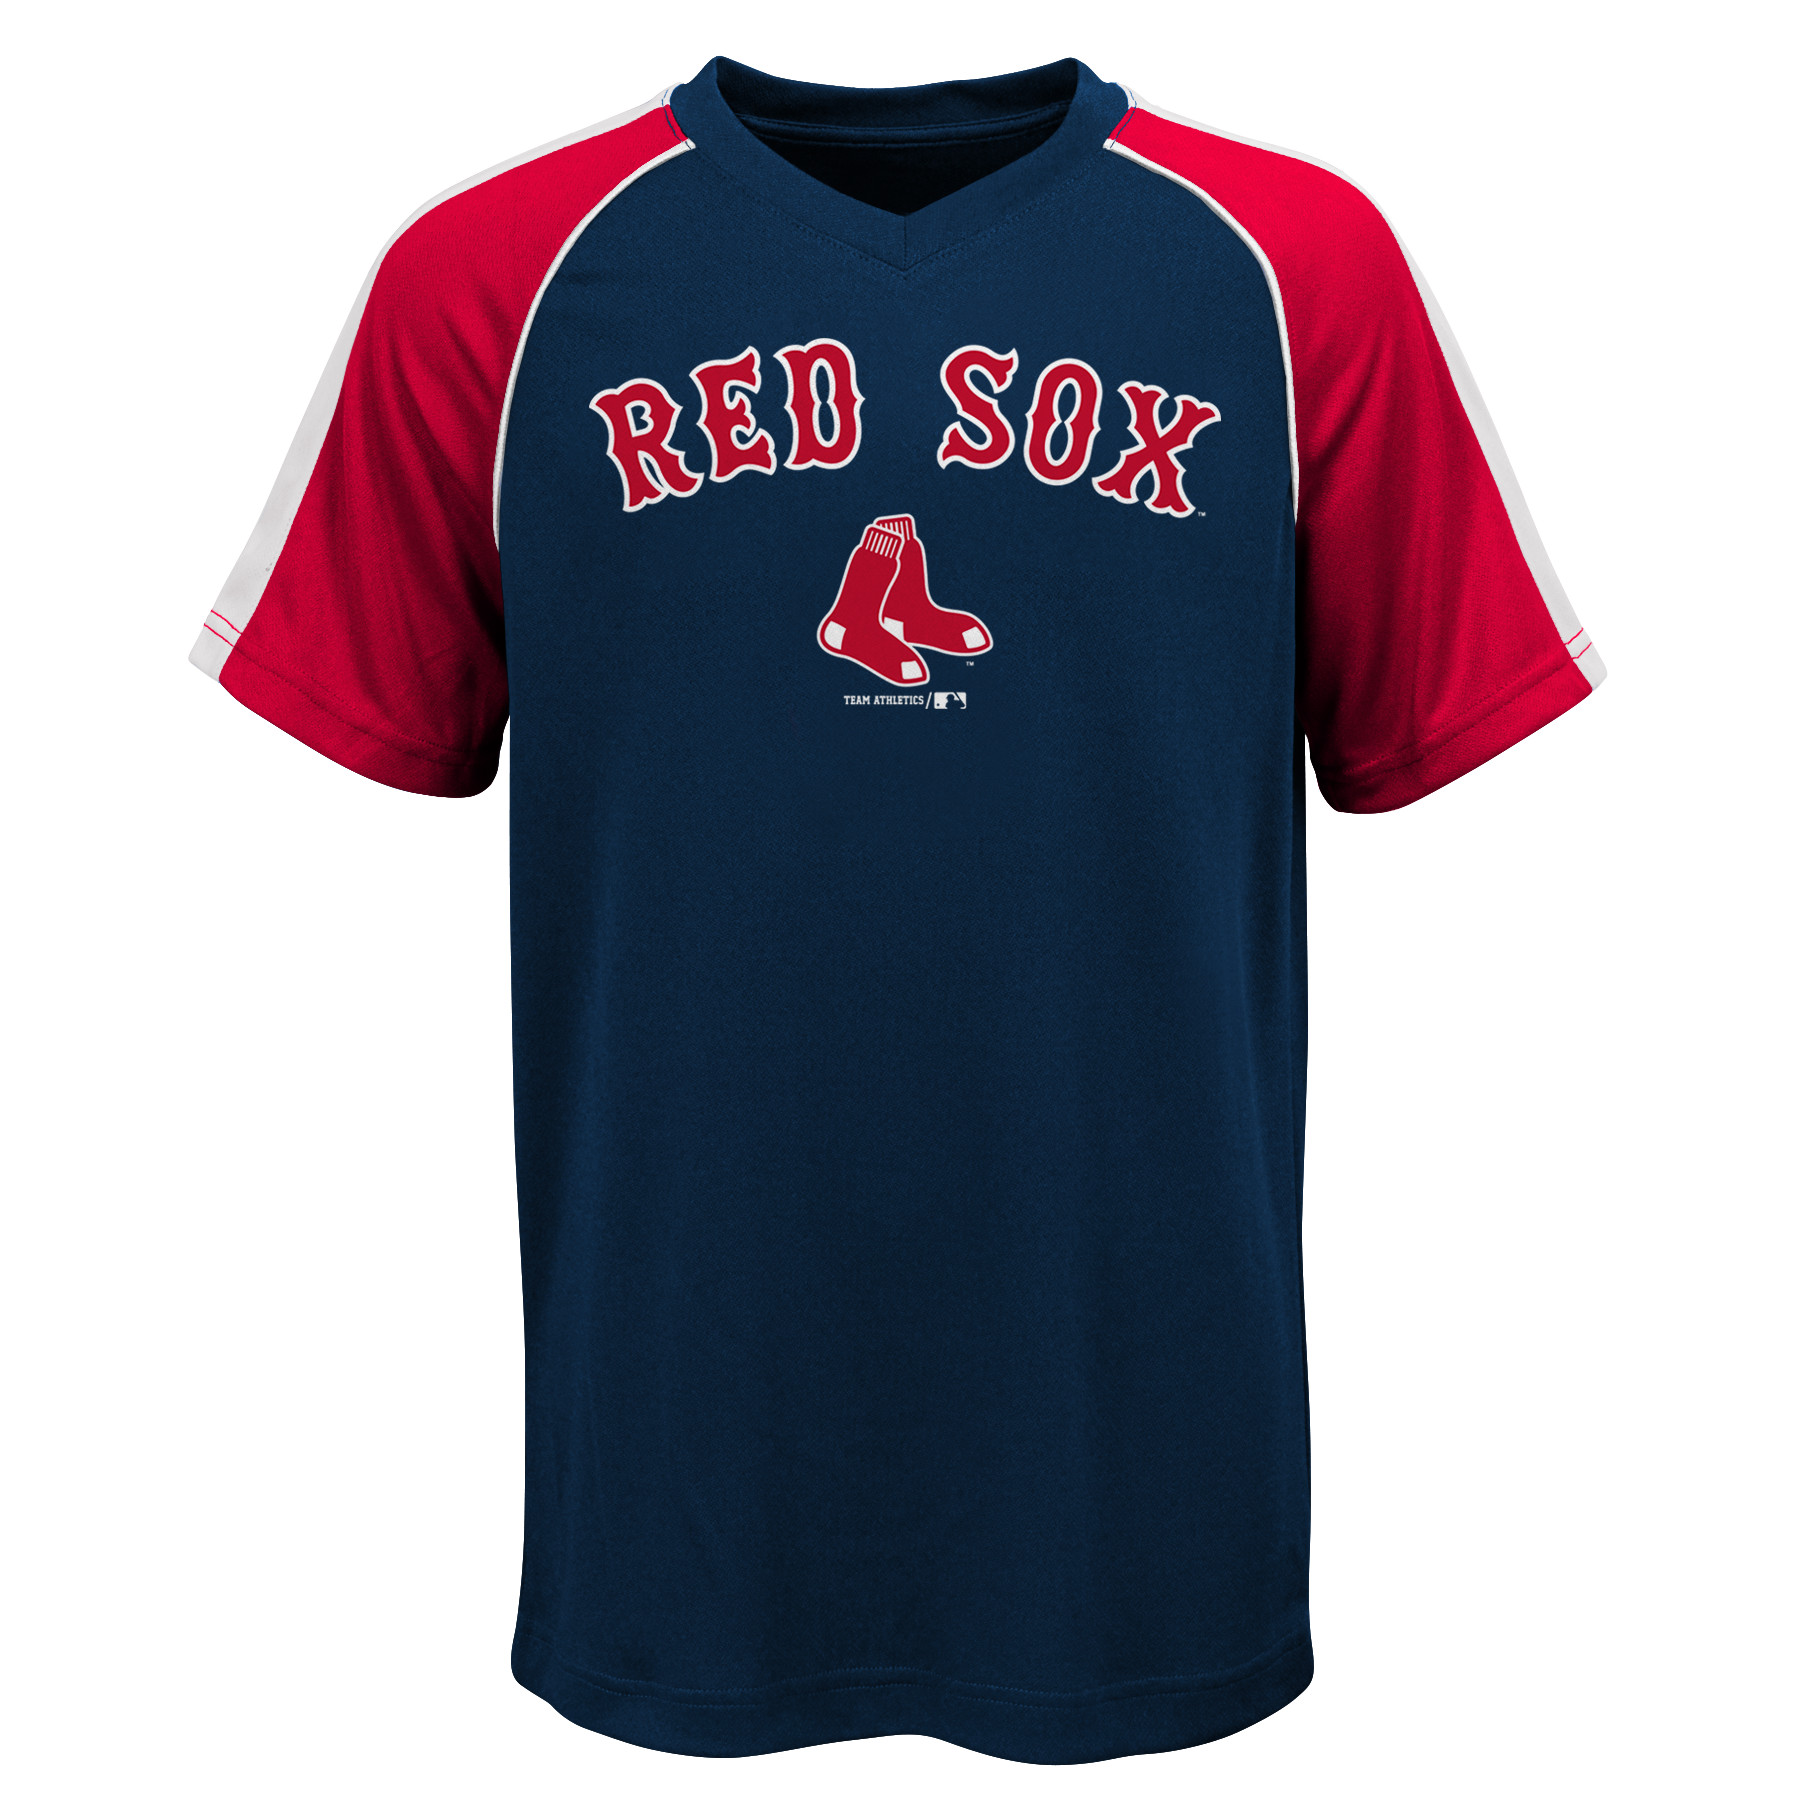 MLB Boston RED SOX TEE Short Sleeve Boys Fashion Jersey Tee 100% Polyester Pin Dot Mesh Jersey Team Tee 4-18